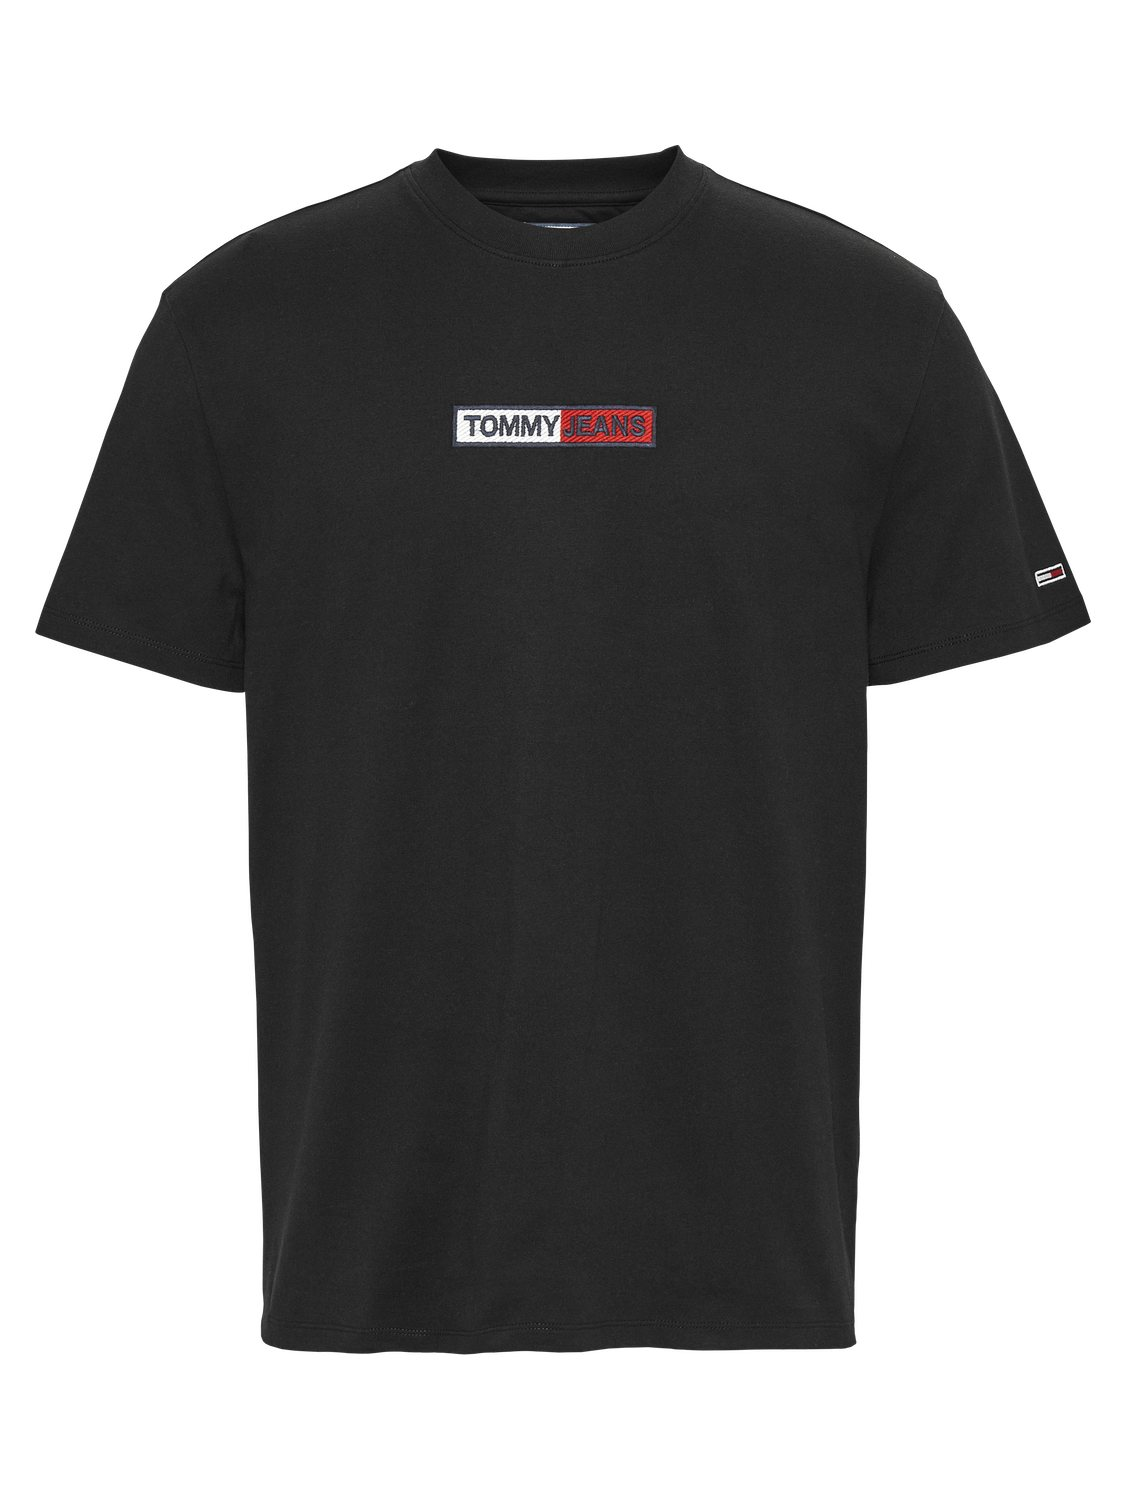 TOMMY HILFIGER - T-shirt Box Logo Black | GATE 36 Hobro